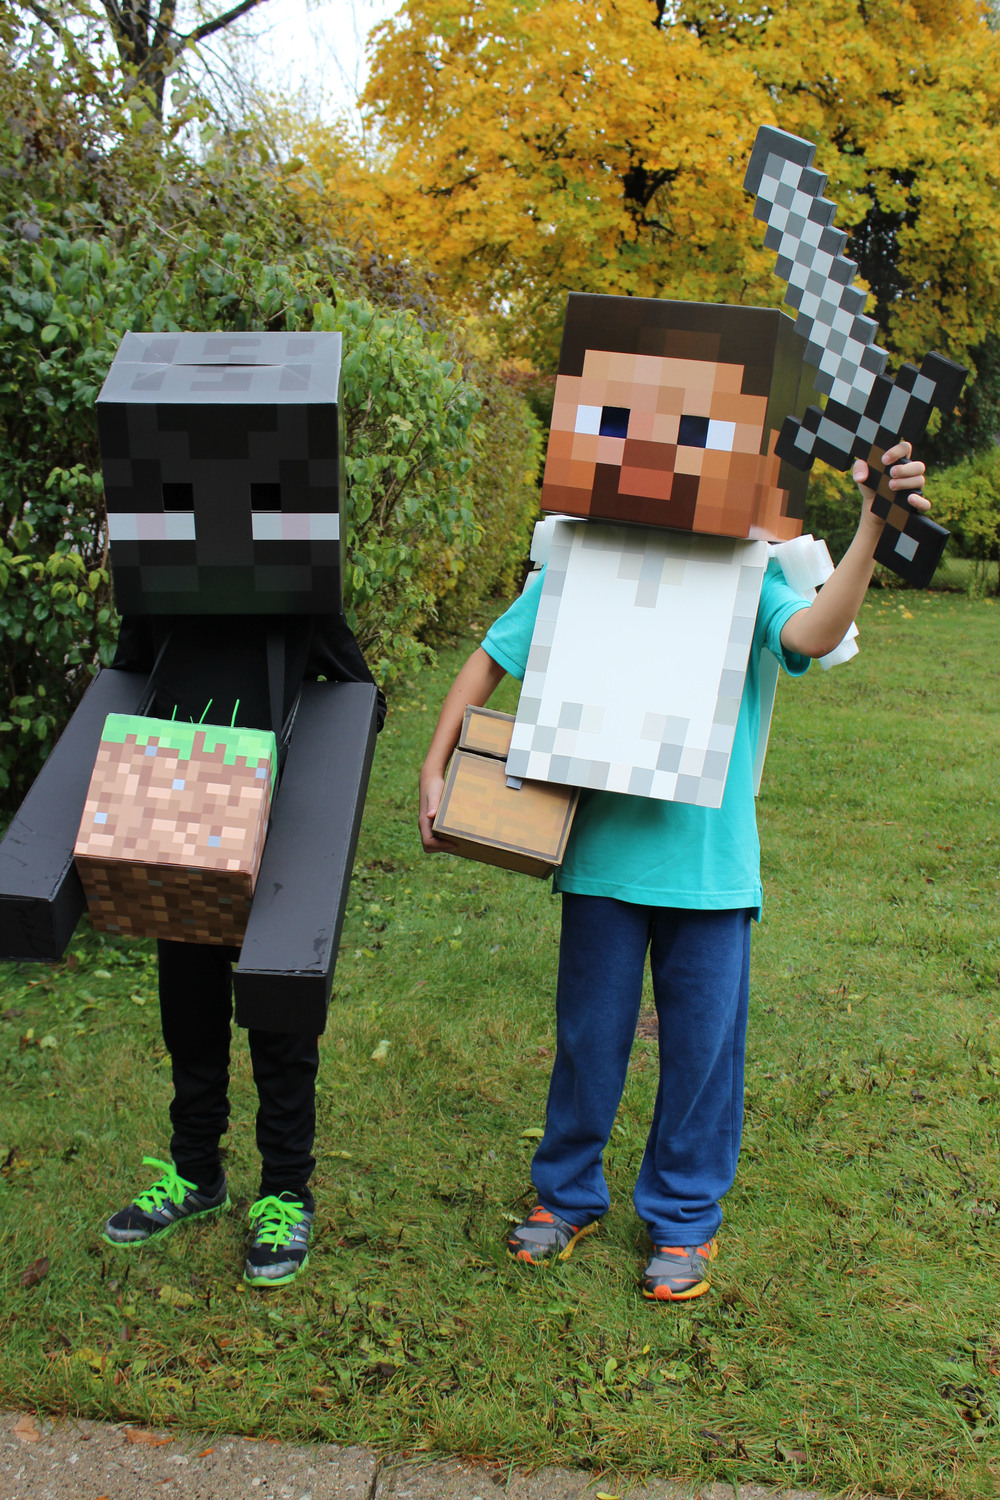 Enderman & Steve from Minecraft